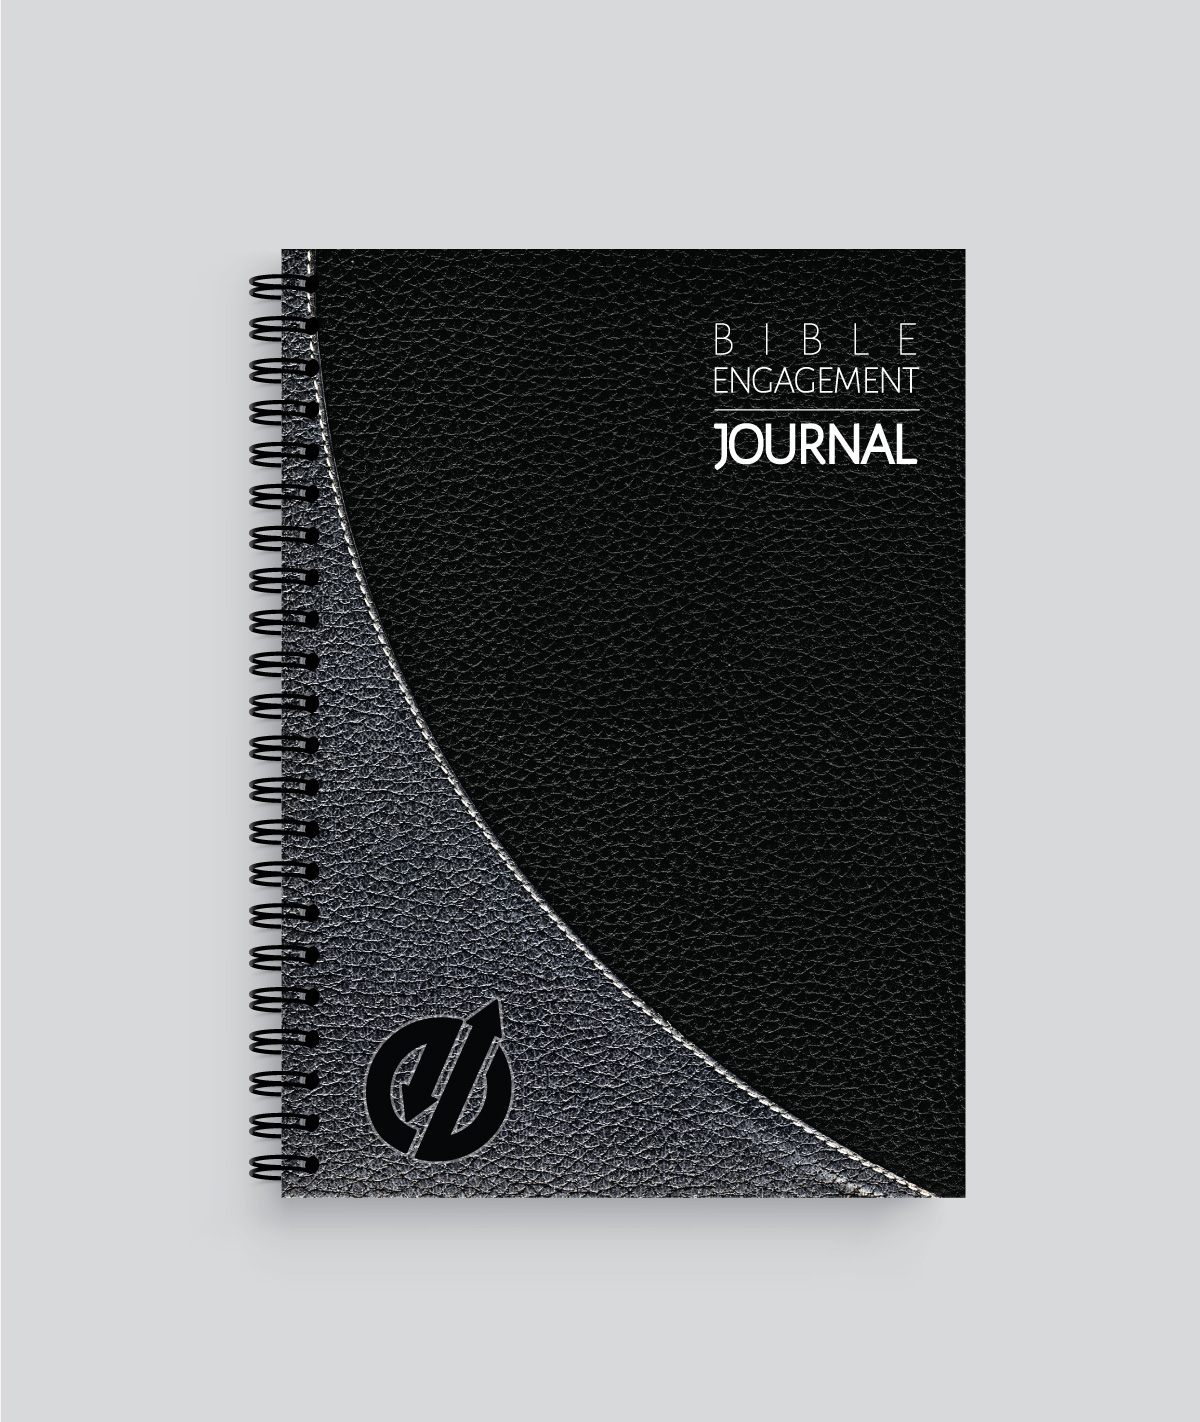 Black and grey handsome spiral Bible journal